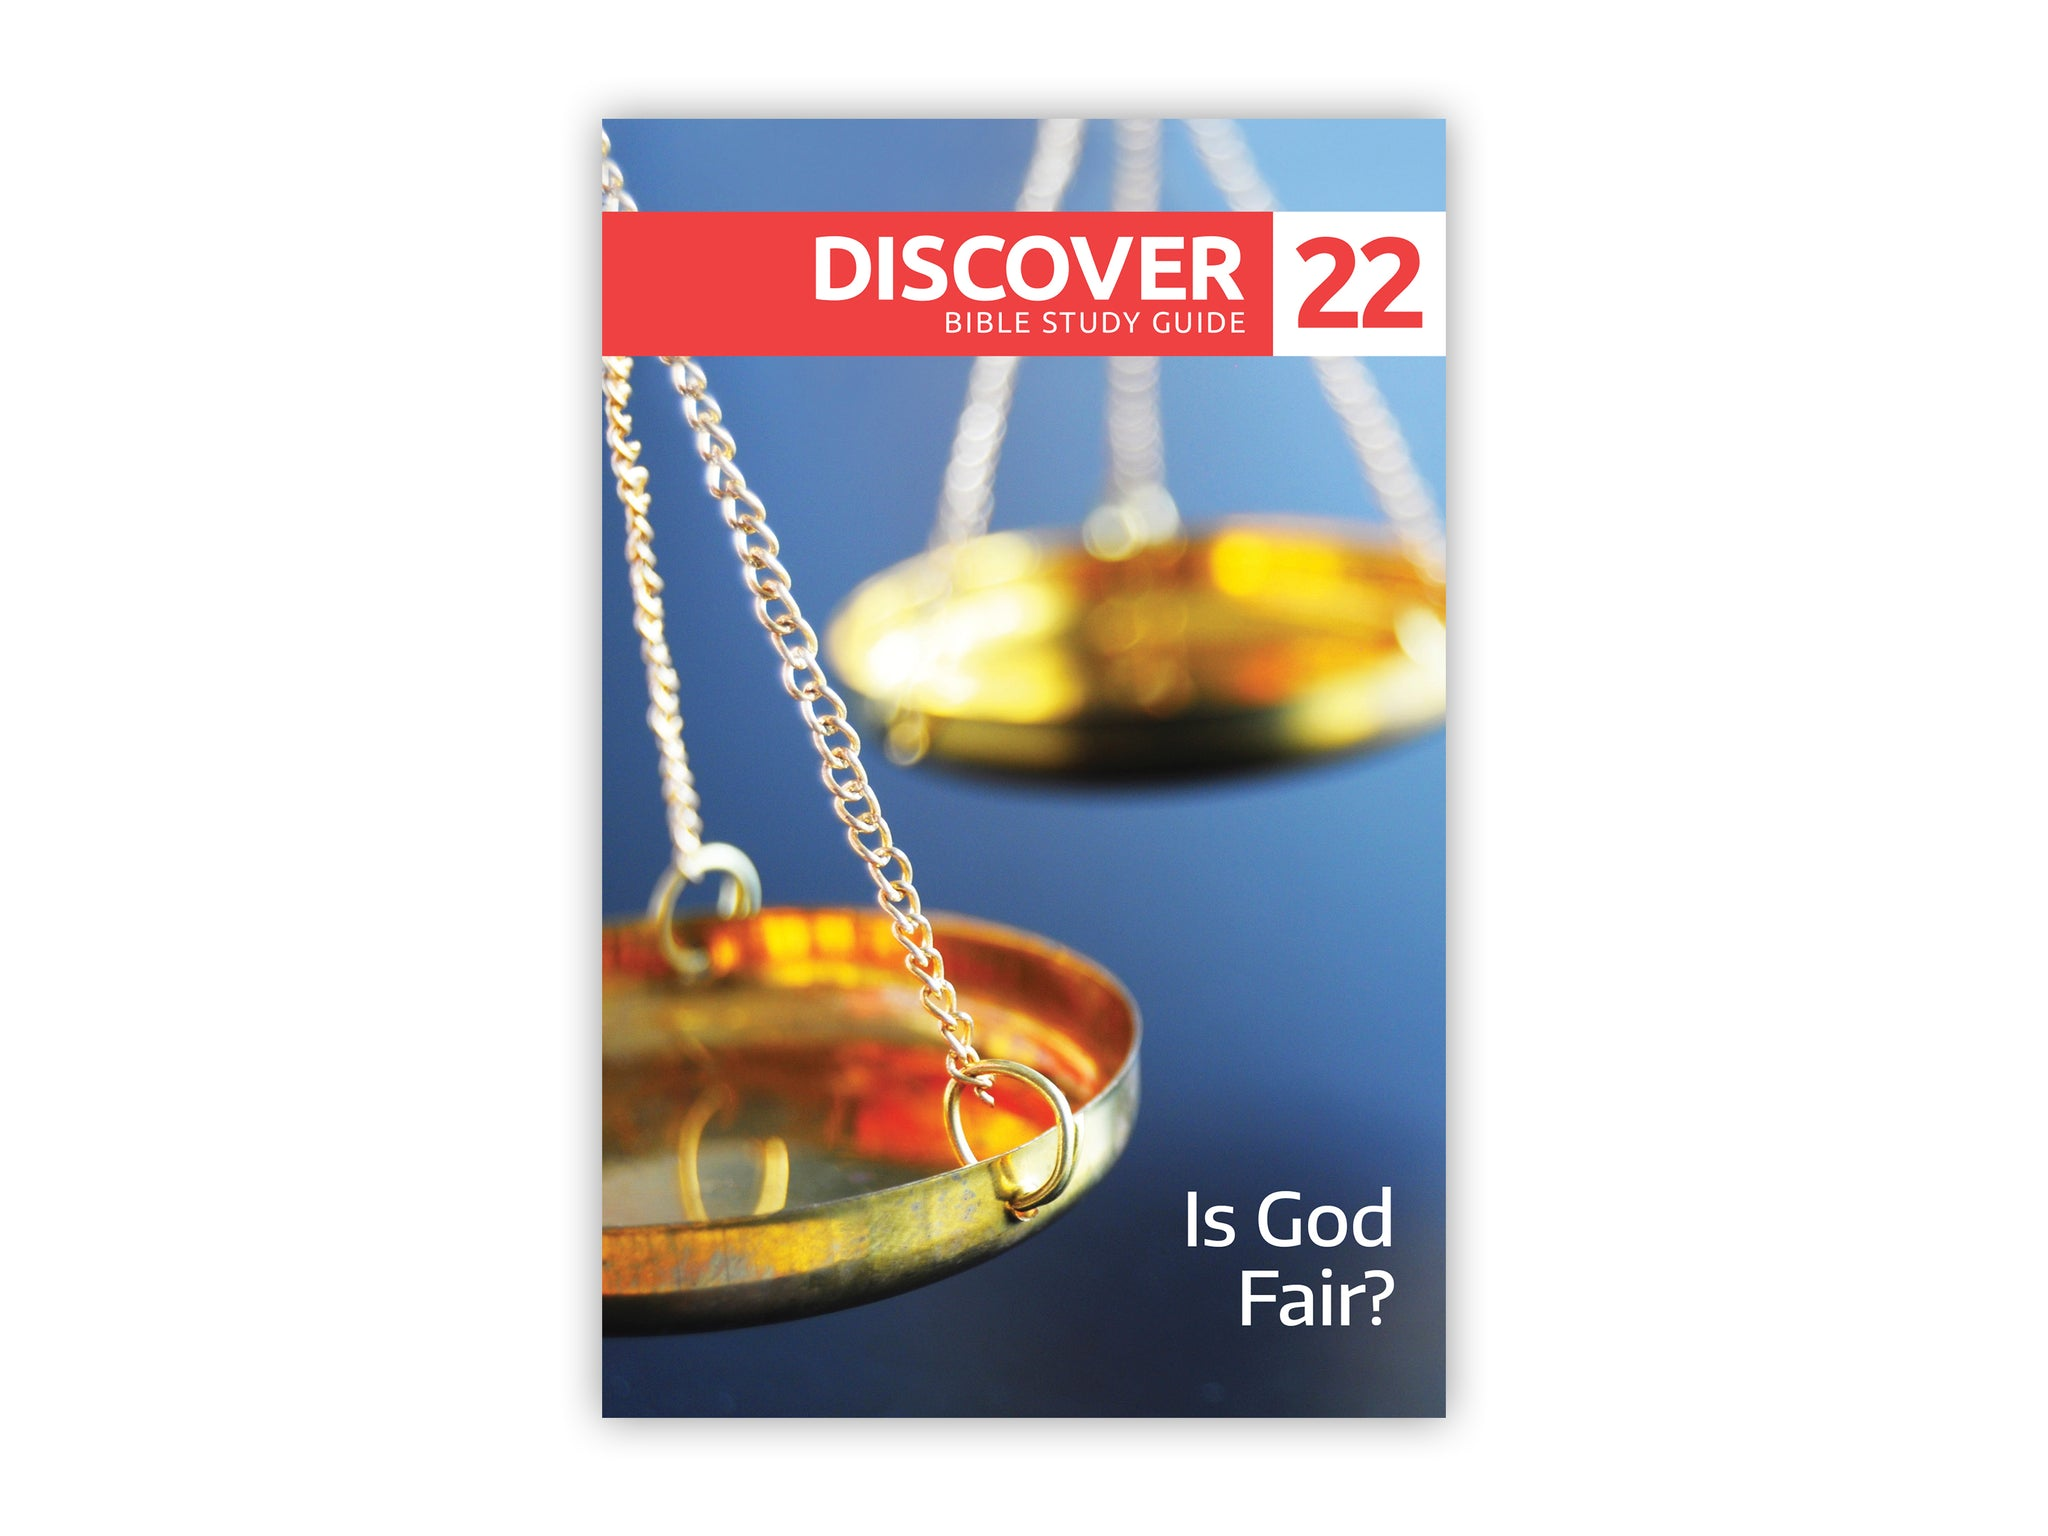 Discover Bible Study Guide #22 - Is God Fair?